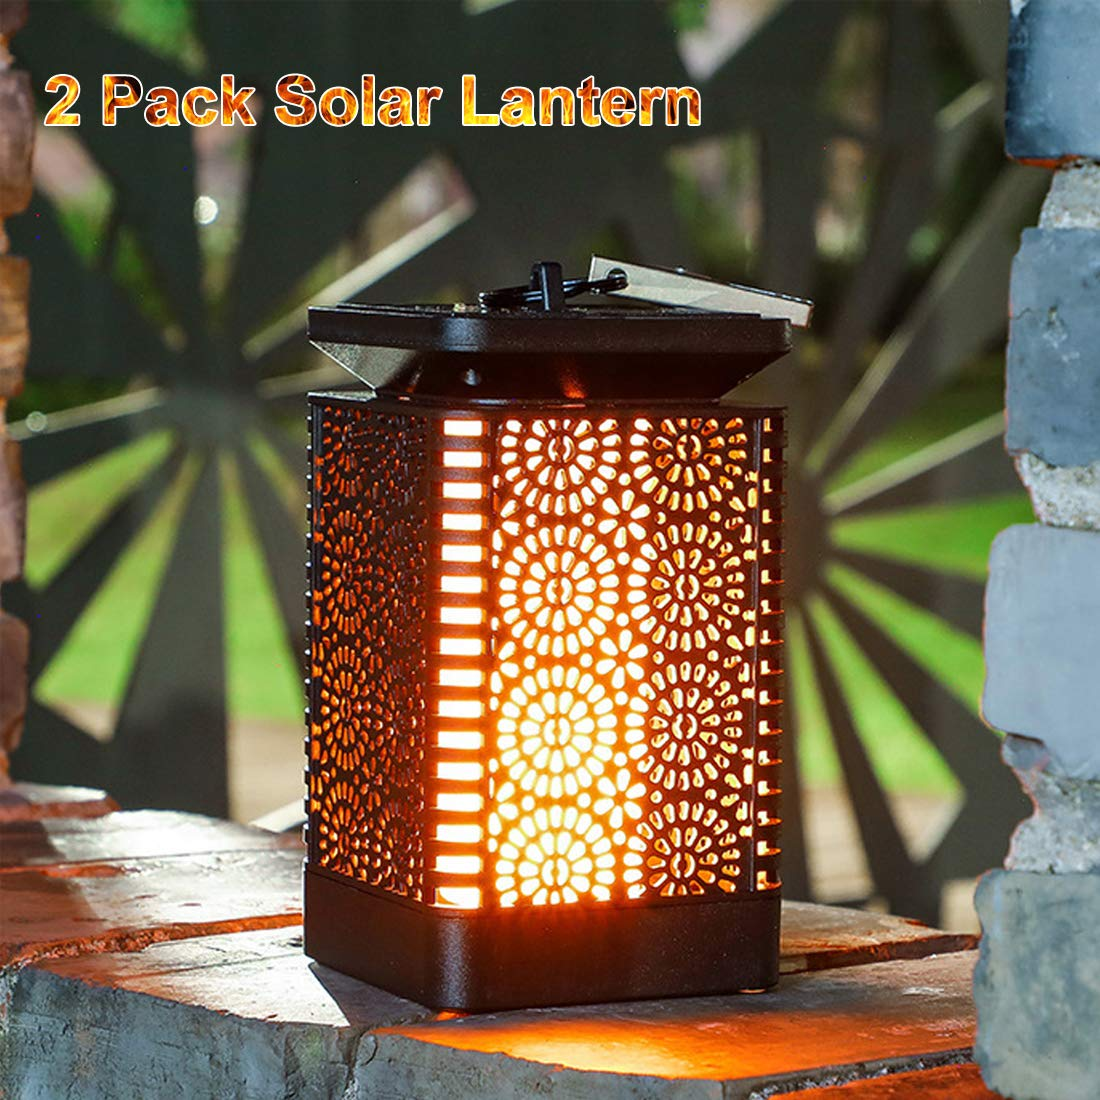 Outdoor//Indoor Decorations Garden Christmas Solar Powered Mosaic Color Changing Mosaic Waterproof Solar Powered Mosaic Glass Table Lamps Party EONHUAYU Mosaic Night Light